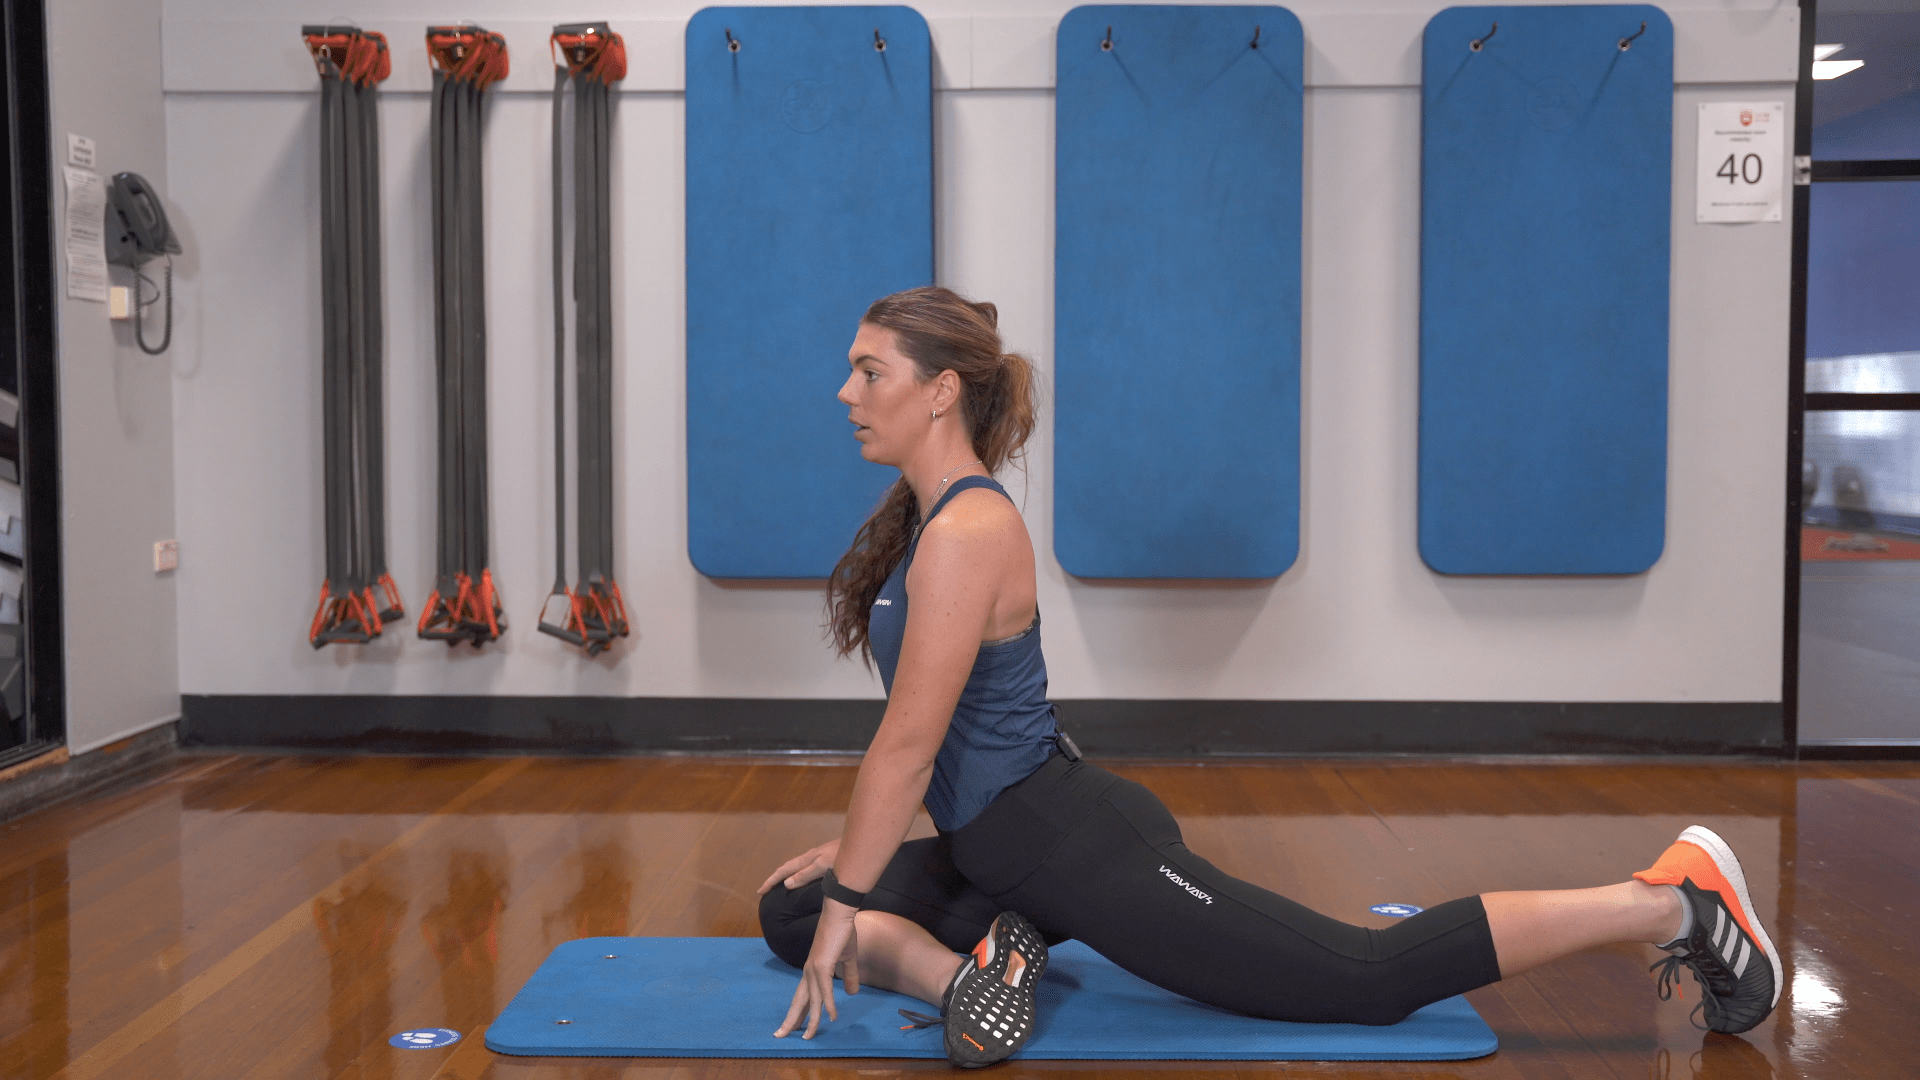 pigeon pose exercise